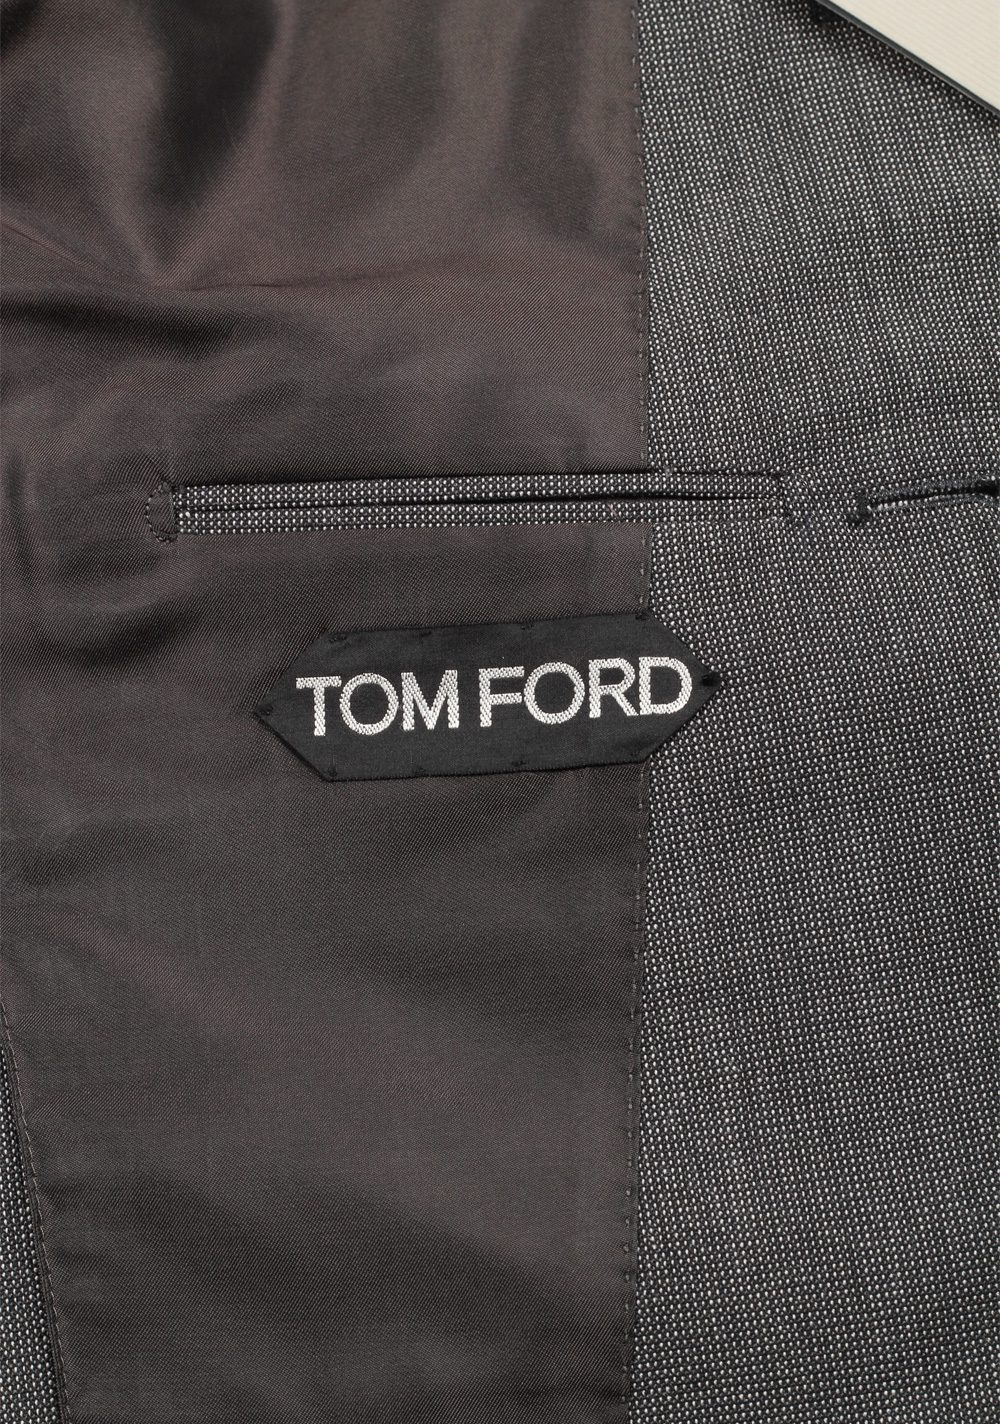 TOM FORD Shelton Gray Suit Size 46 / 36R U.S. In Mohair Wool | Costume Limité